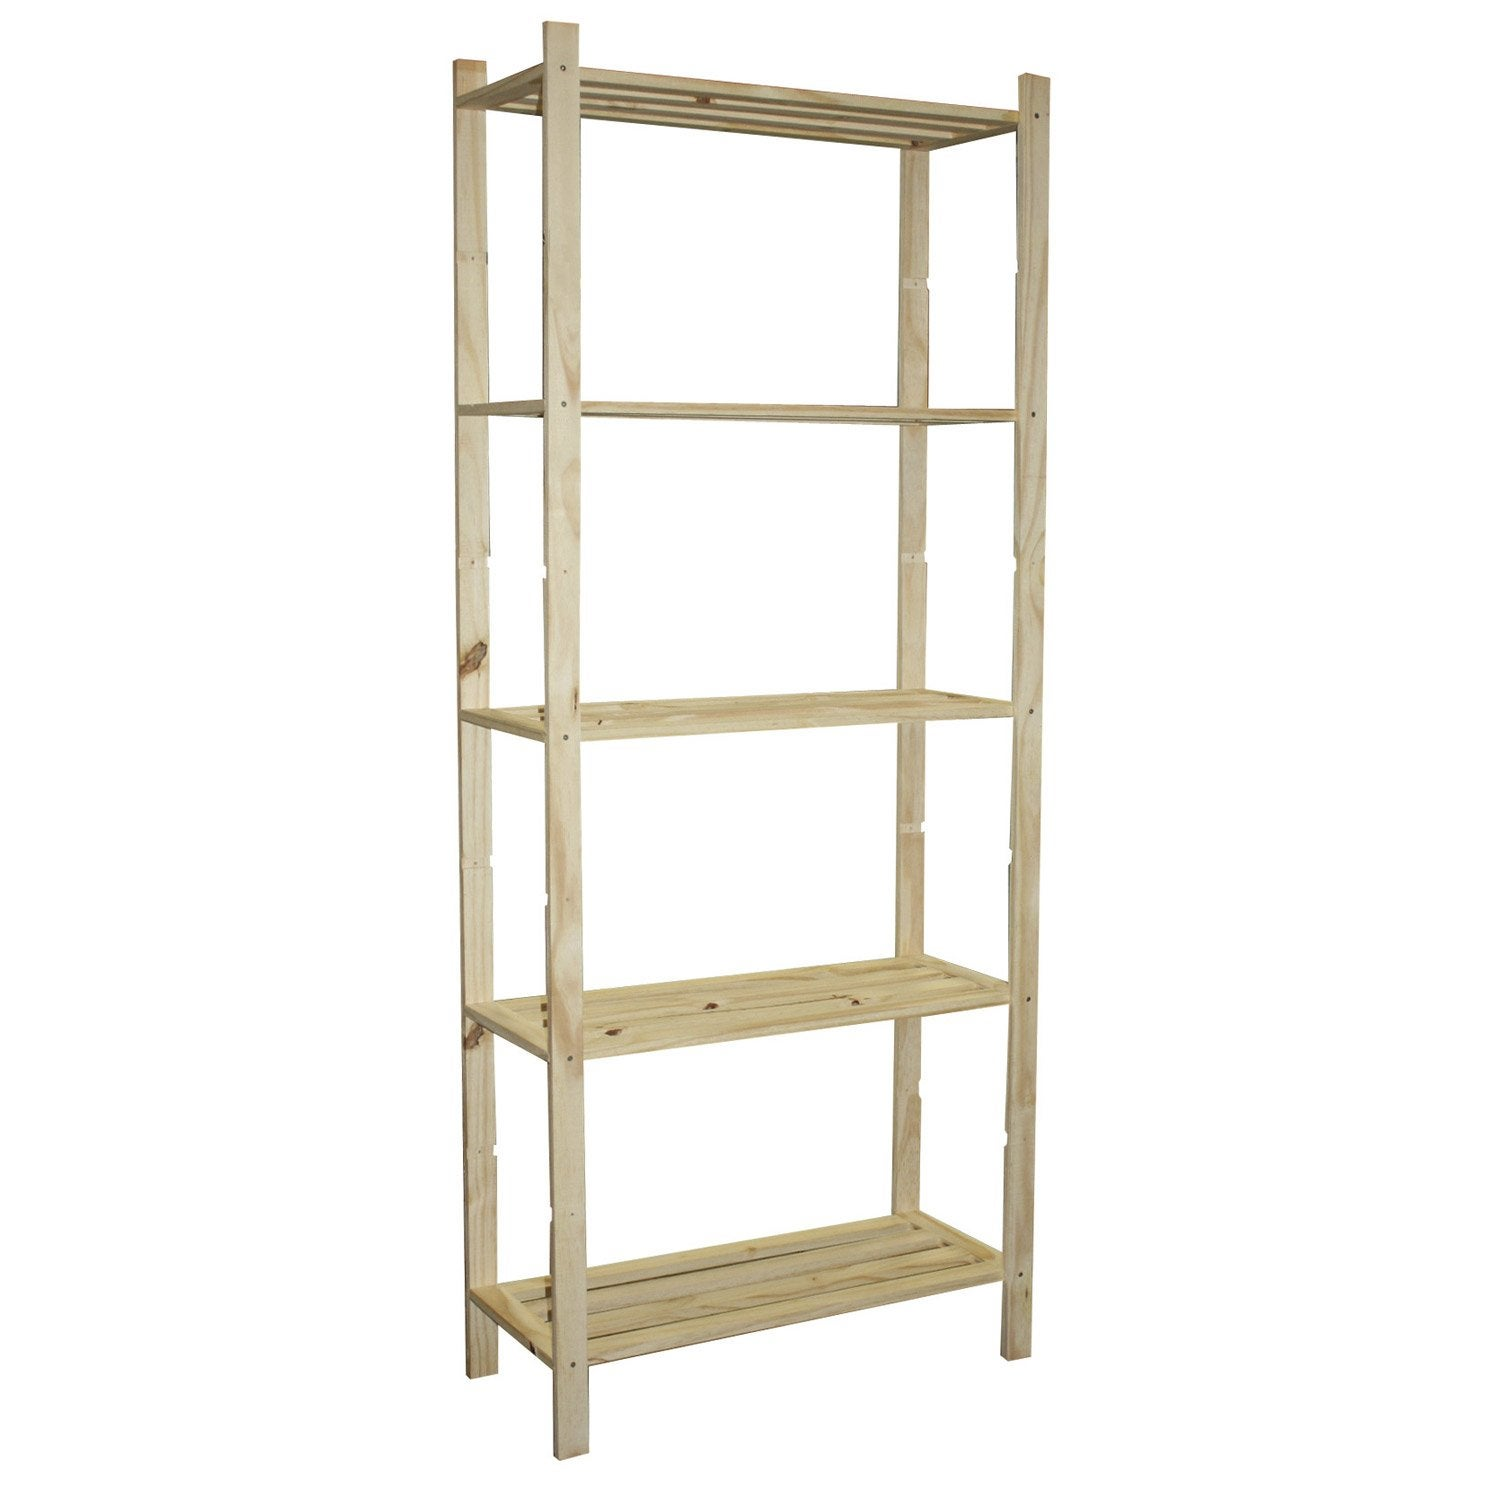 Etag re pin 5 tablettes x x cm leroy merlin - Etagere bois leroy merlin ...